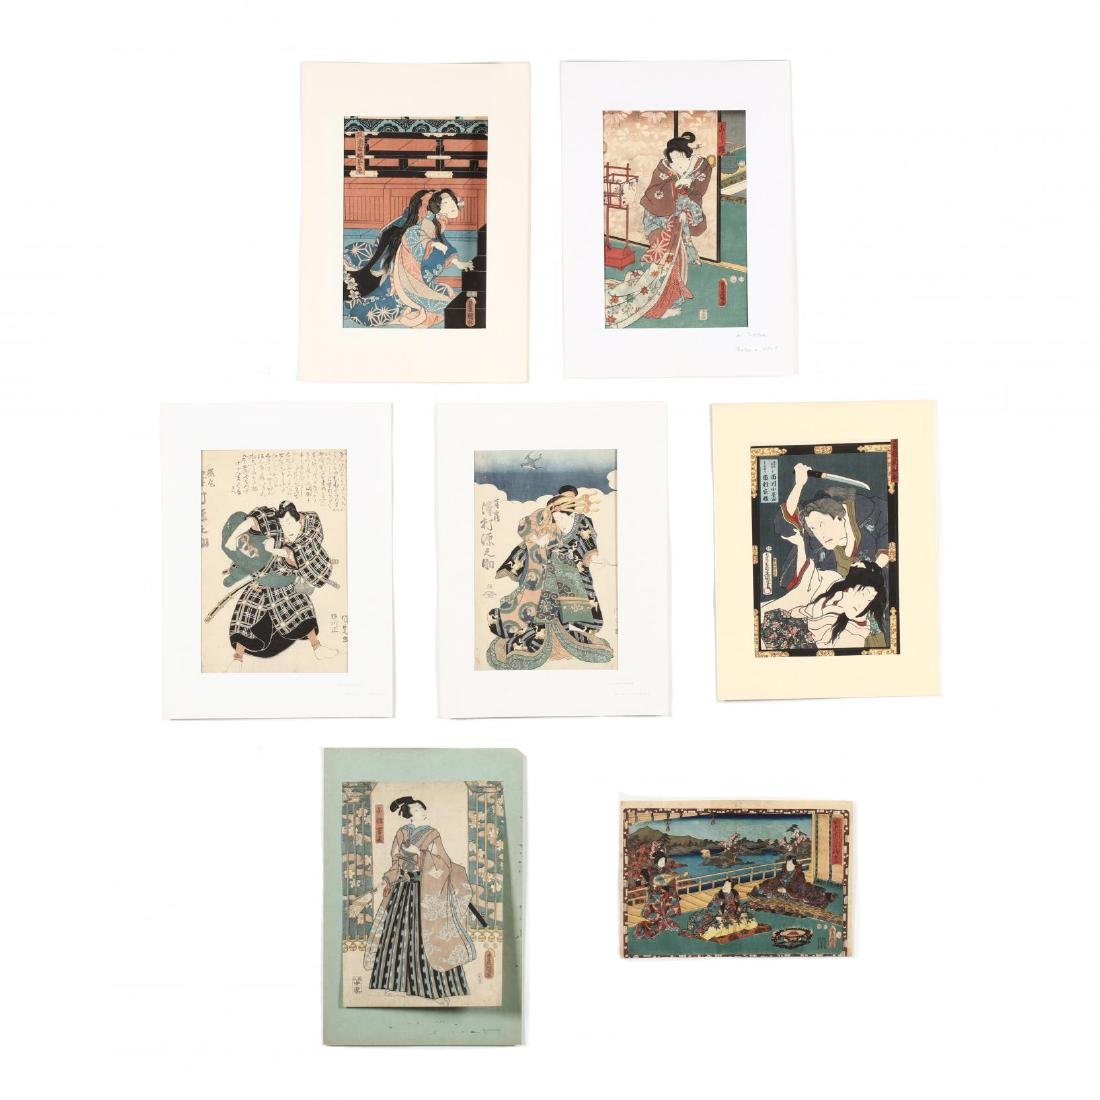 A Group of Seven Woodblock Prints by Utagawa Kunisada